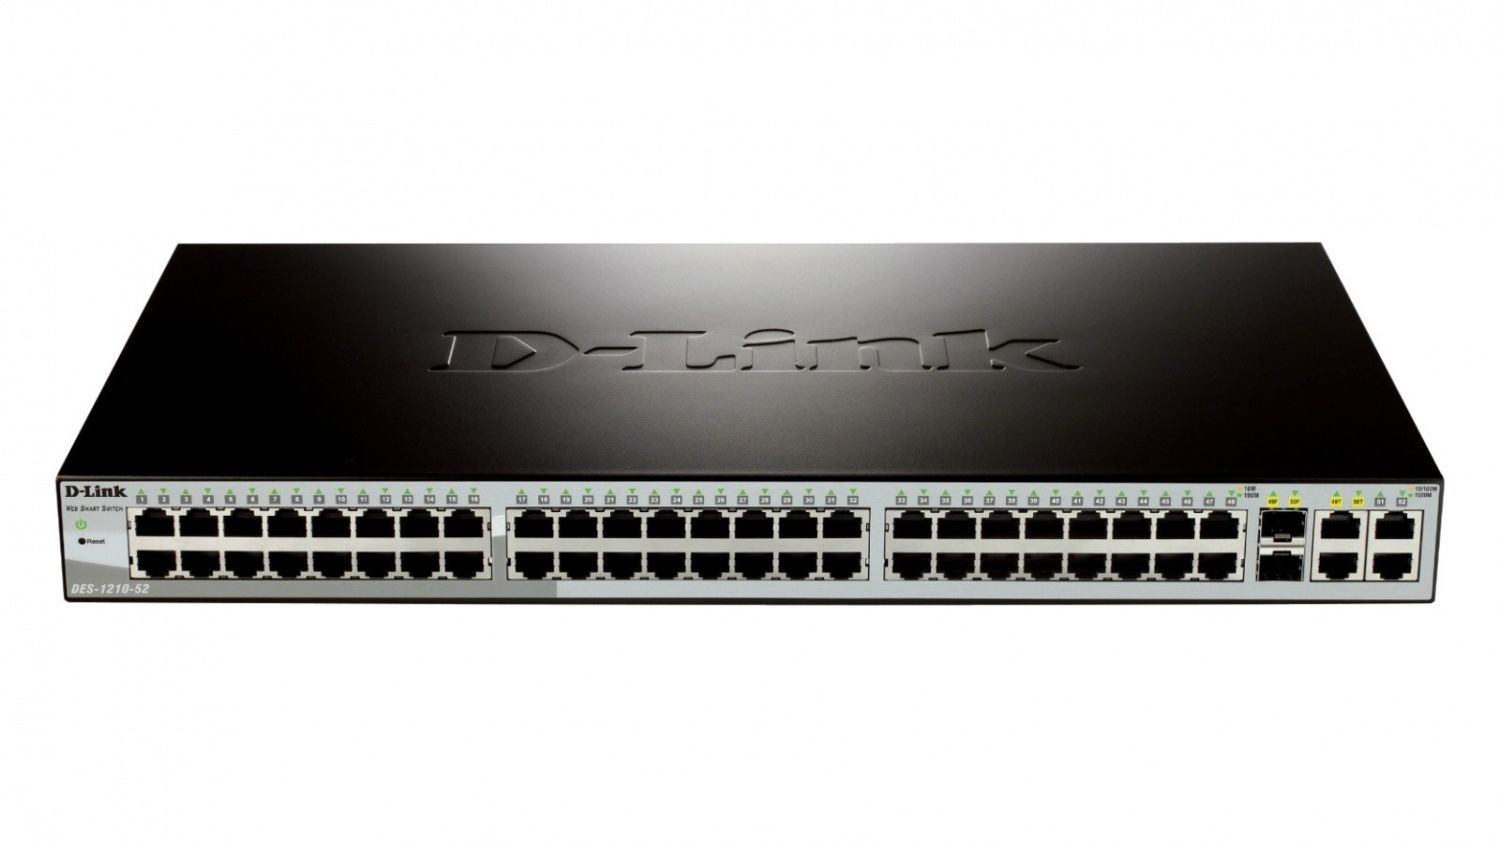 D-Link 48-port 10/100 Smart Switch + 2 Combo 1000BaseT/SFP + 2 Gigabit